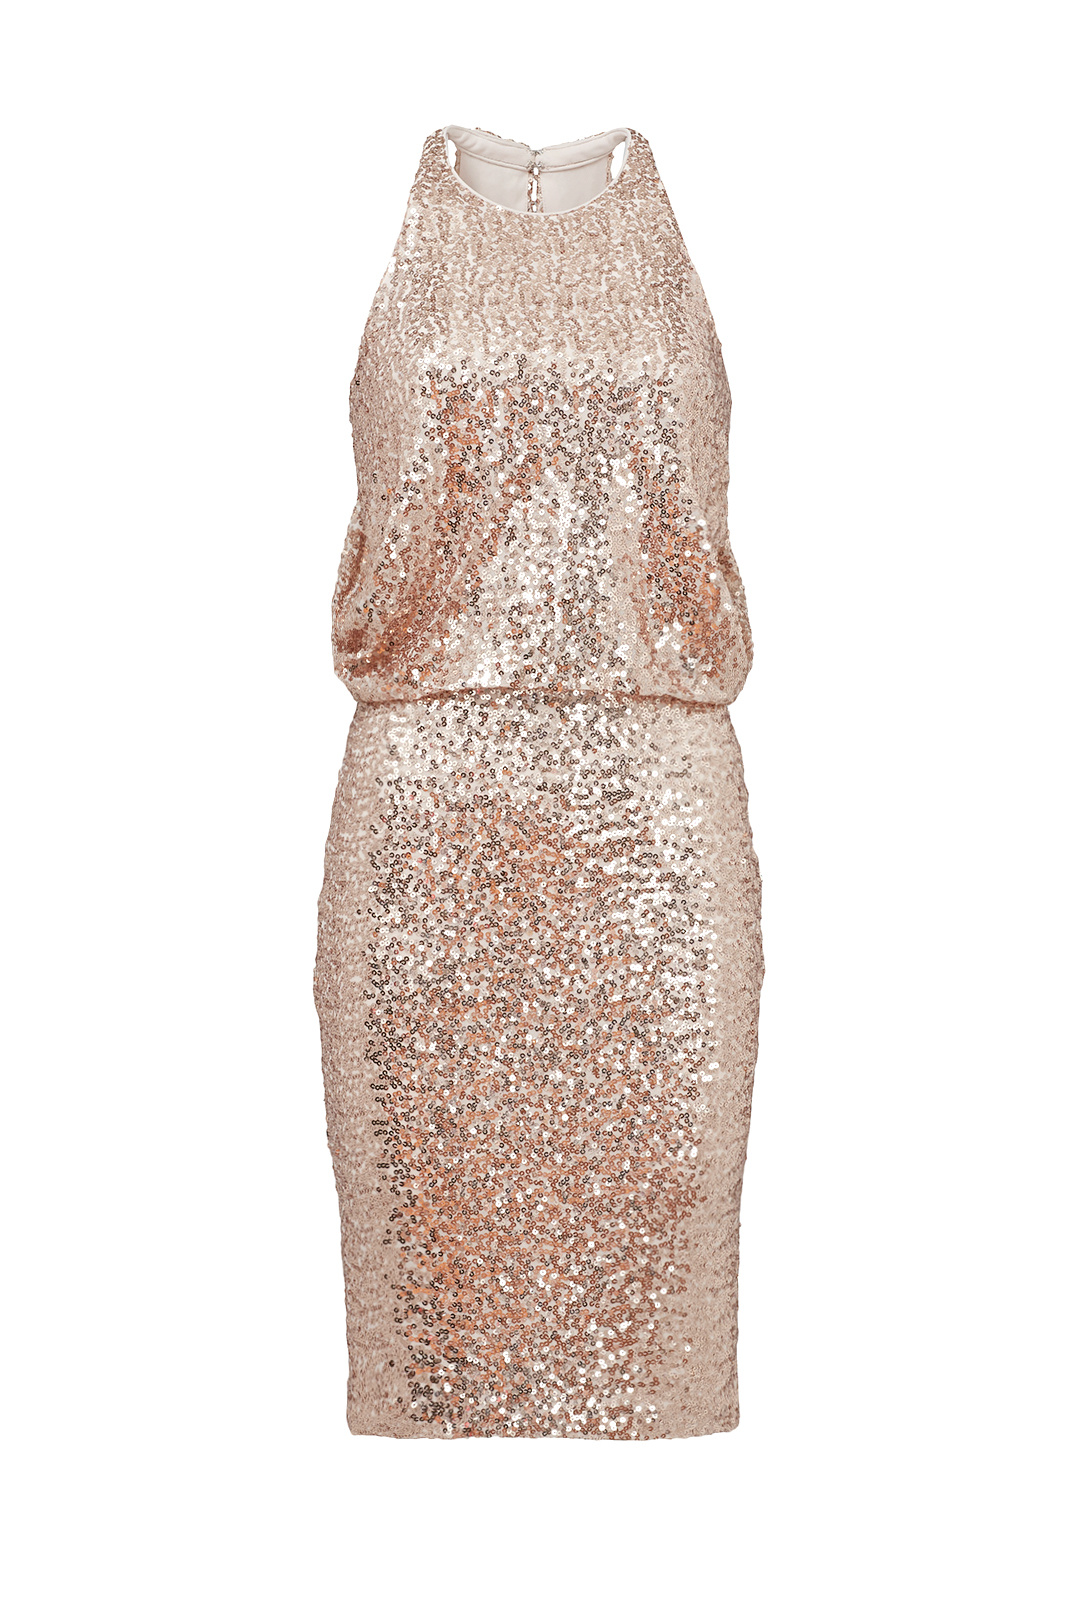 Badgley Mischka - Blush Maria Dress